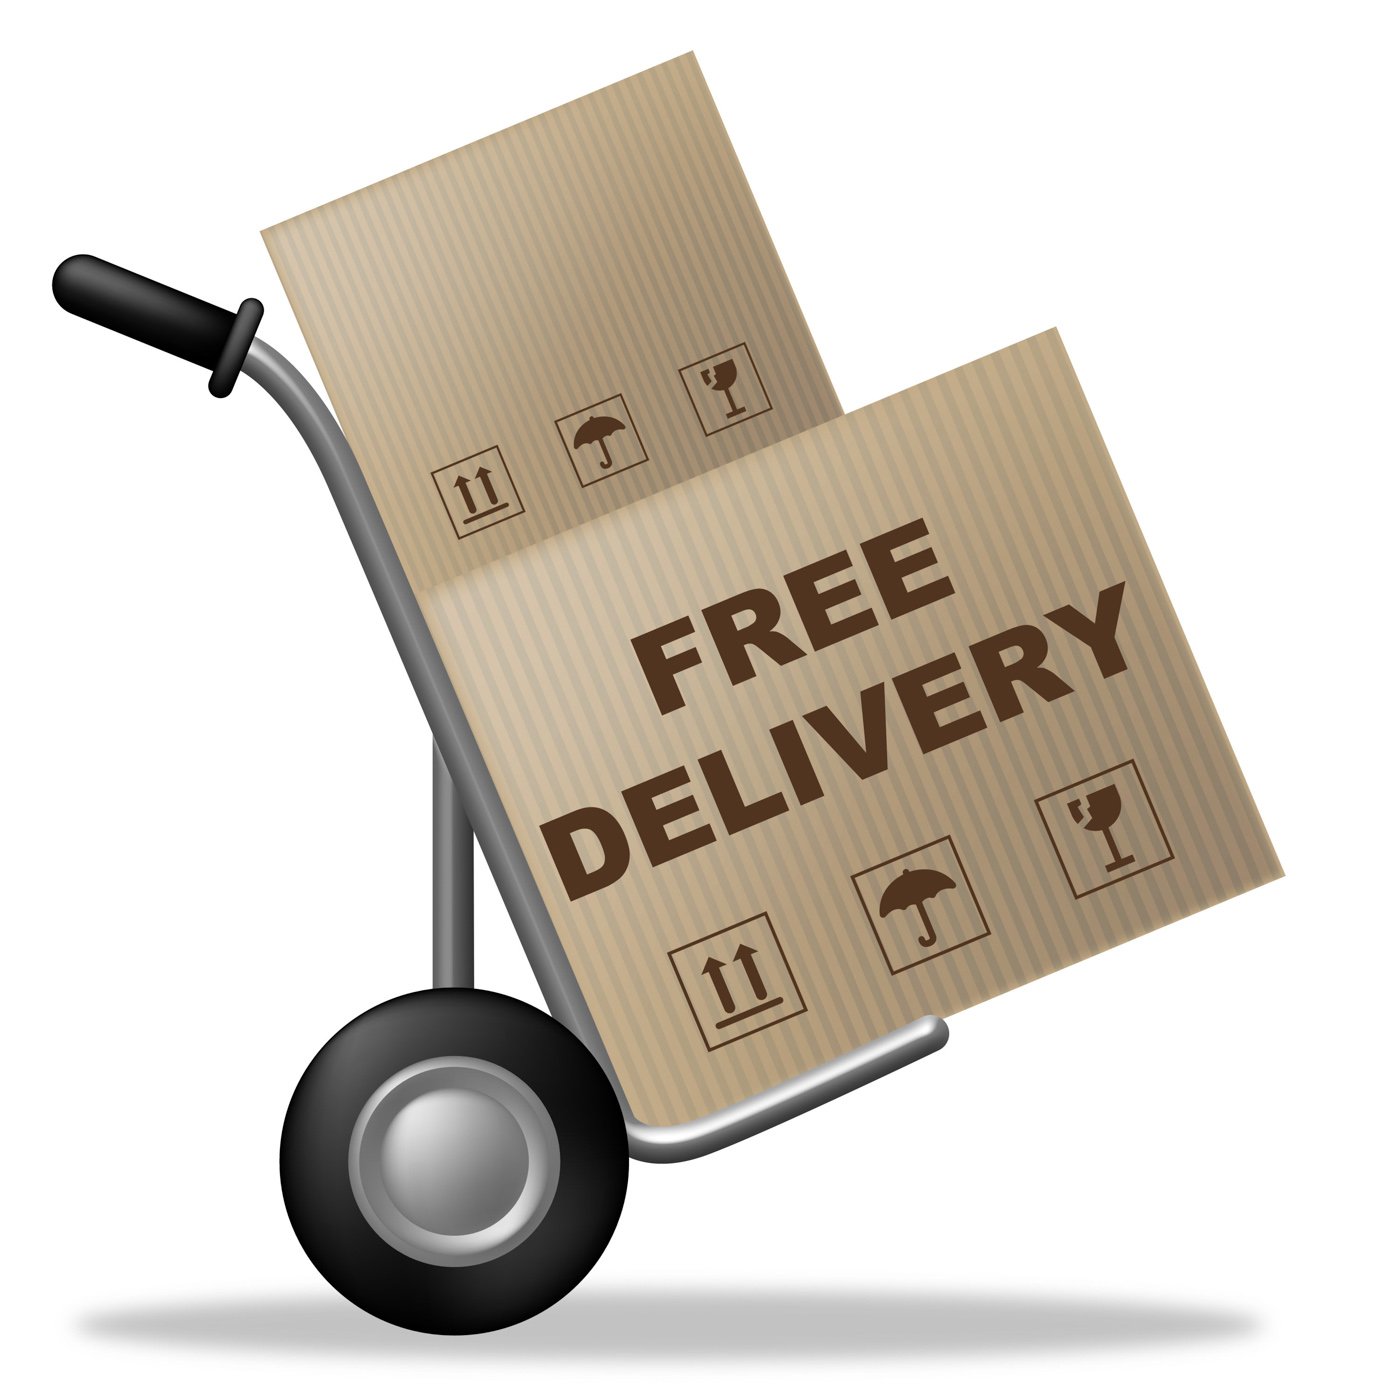 Free Delivery Shows With Our Compliments And Box, Handout, Withourcomplimen, Shippingbox, Shipping, HQ Photo